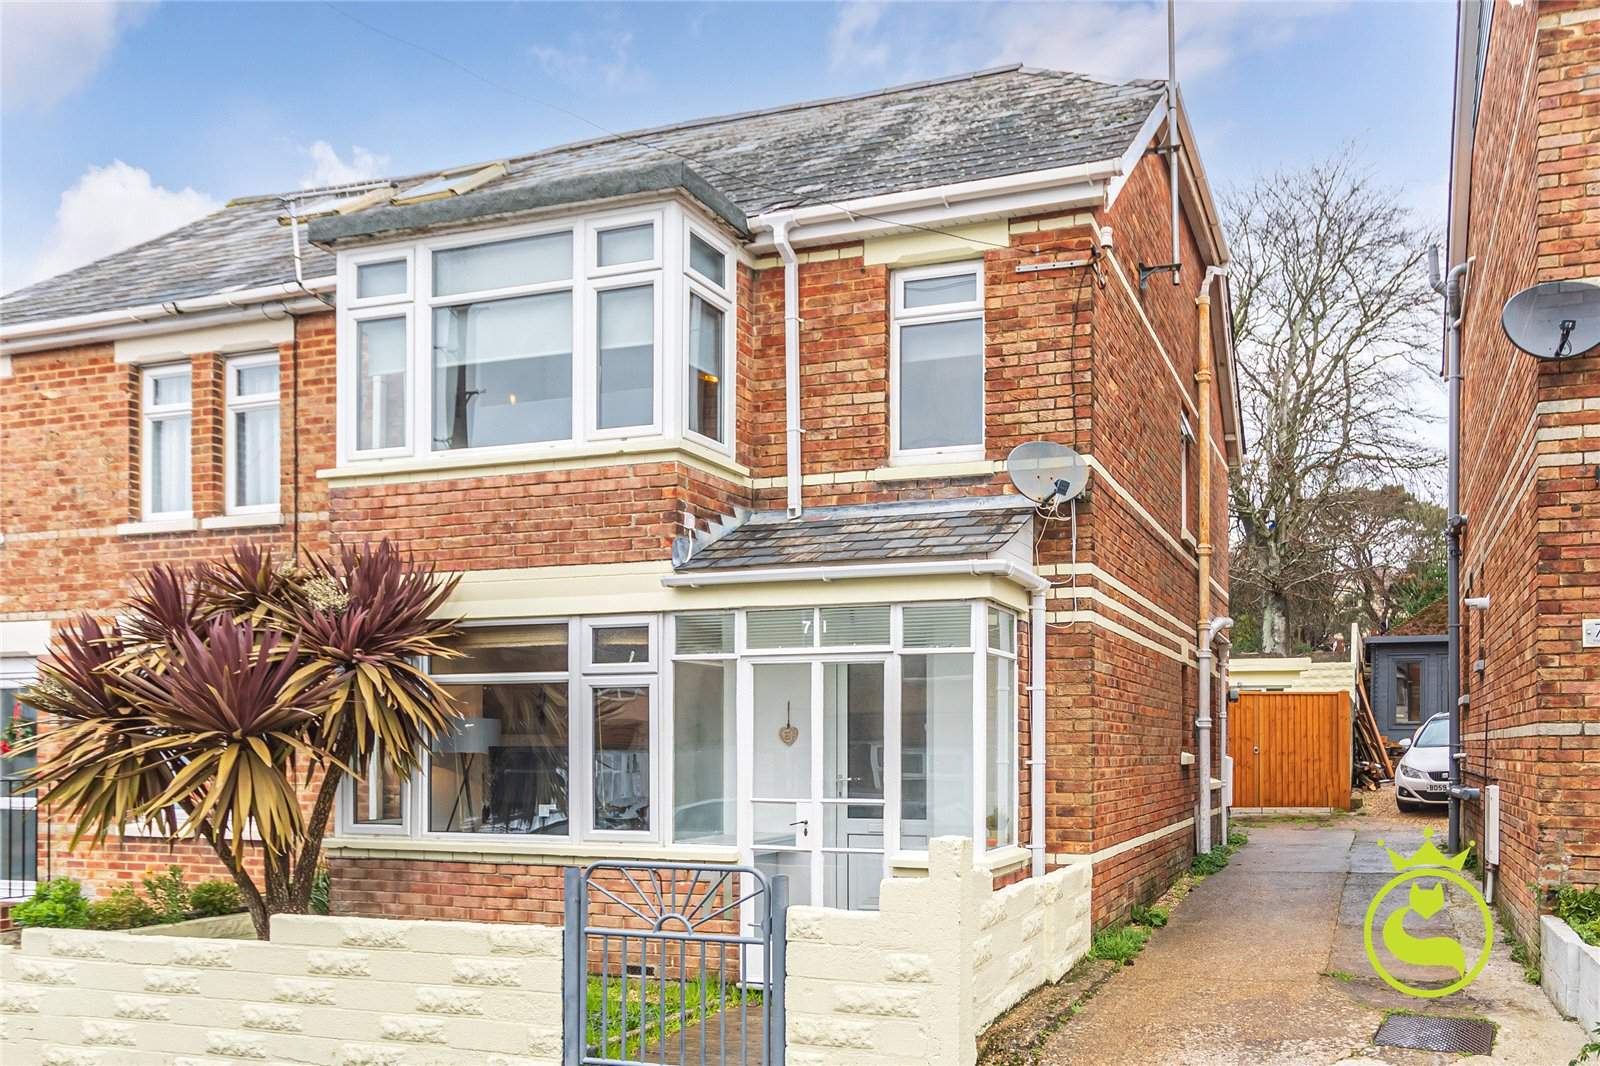 3 bed house to rent in Palmerston Road, Parkstone, BH14